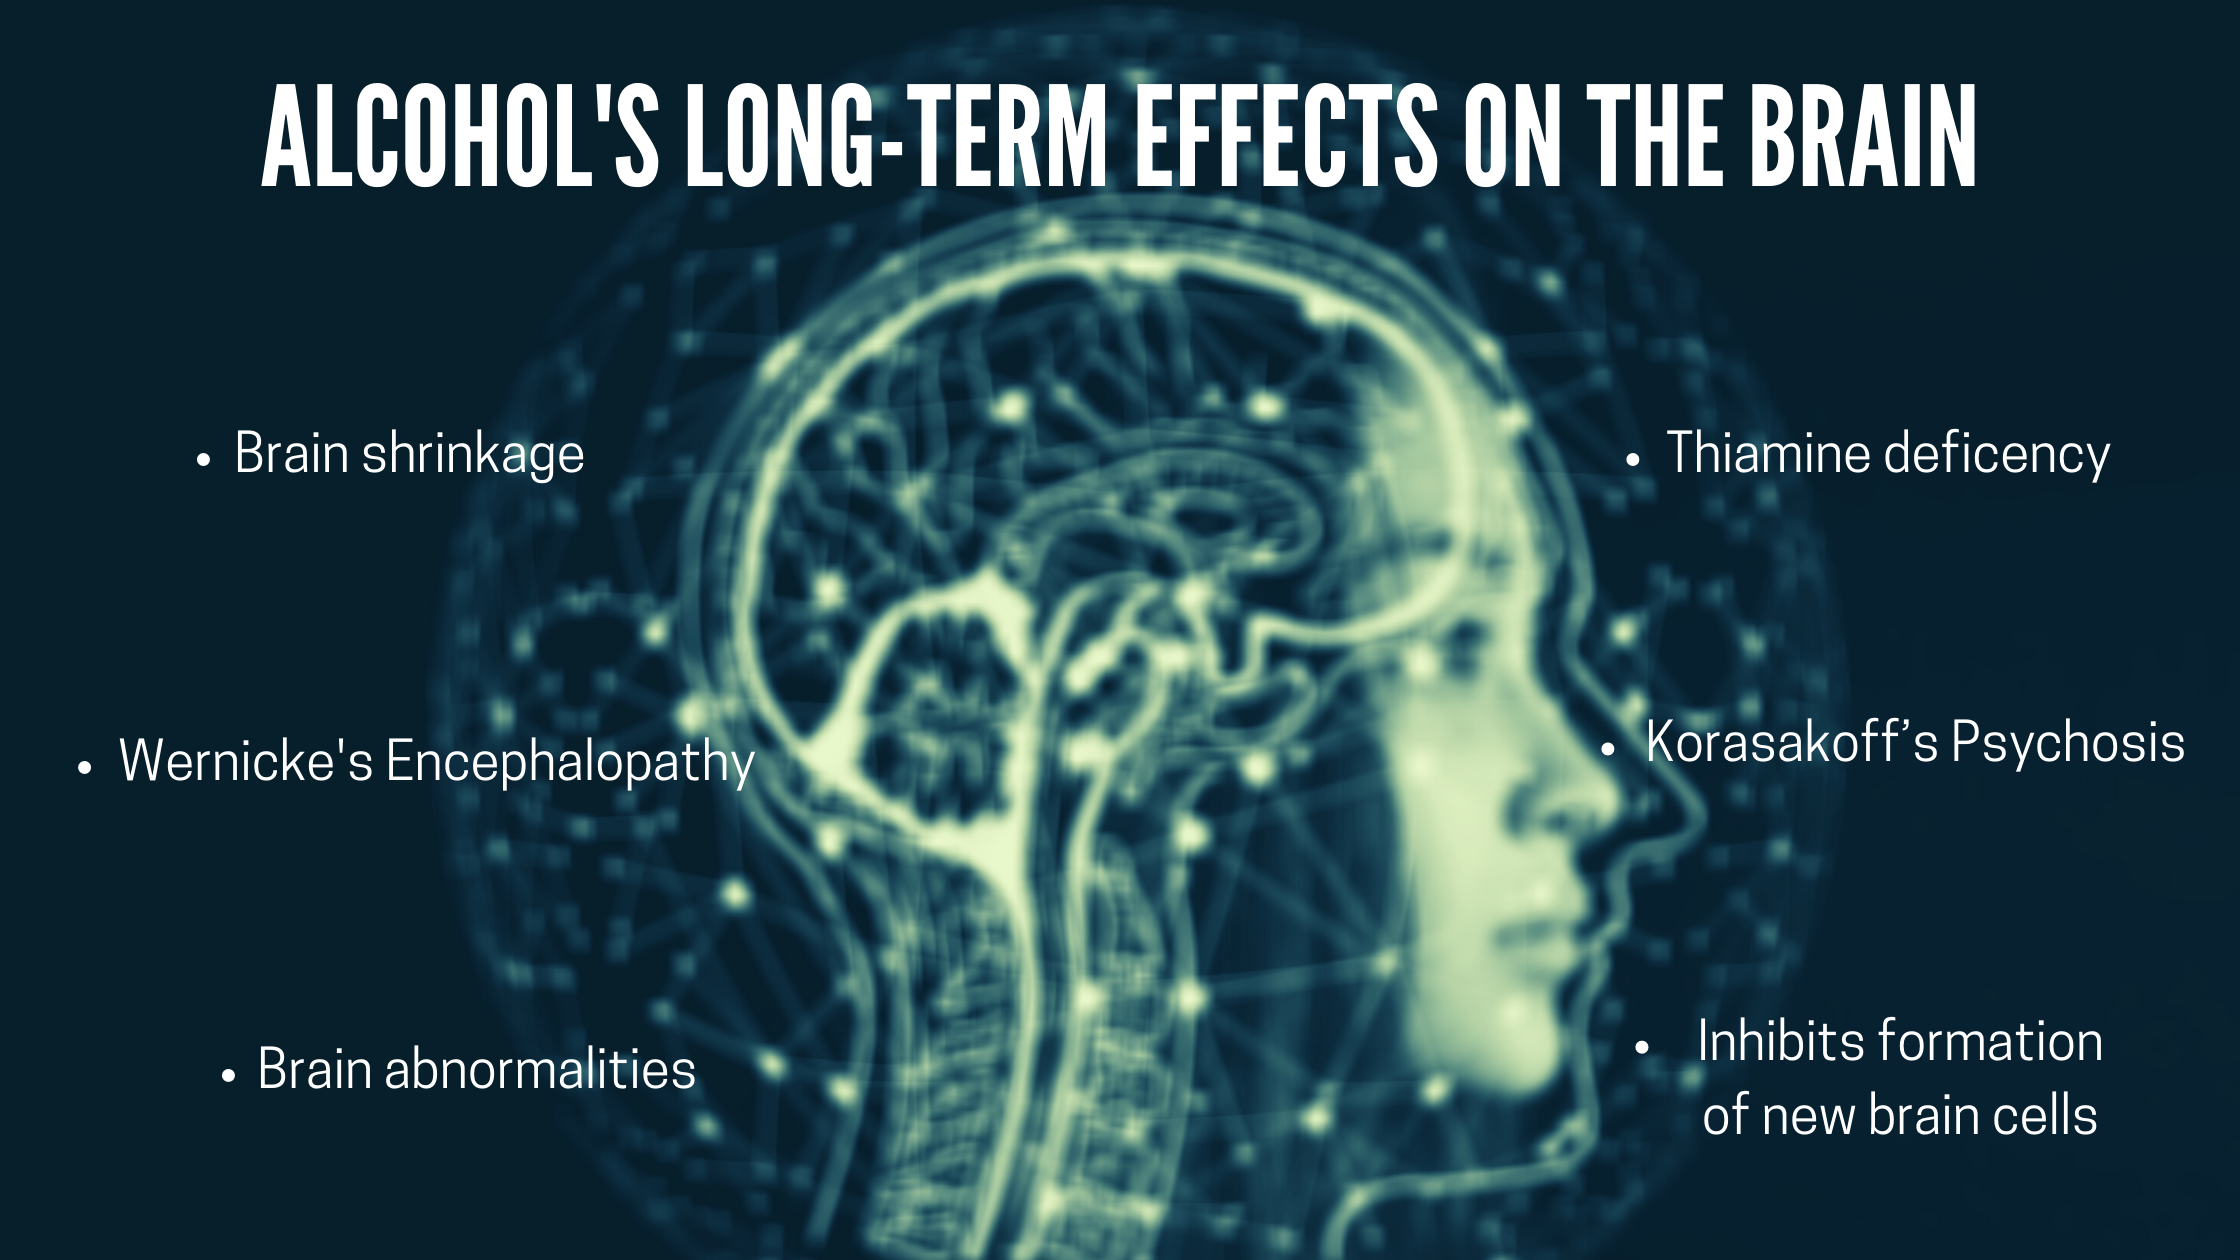 long-term effects of alcohol on the brain